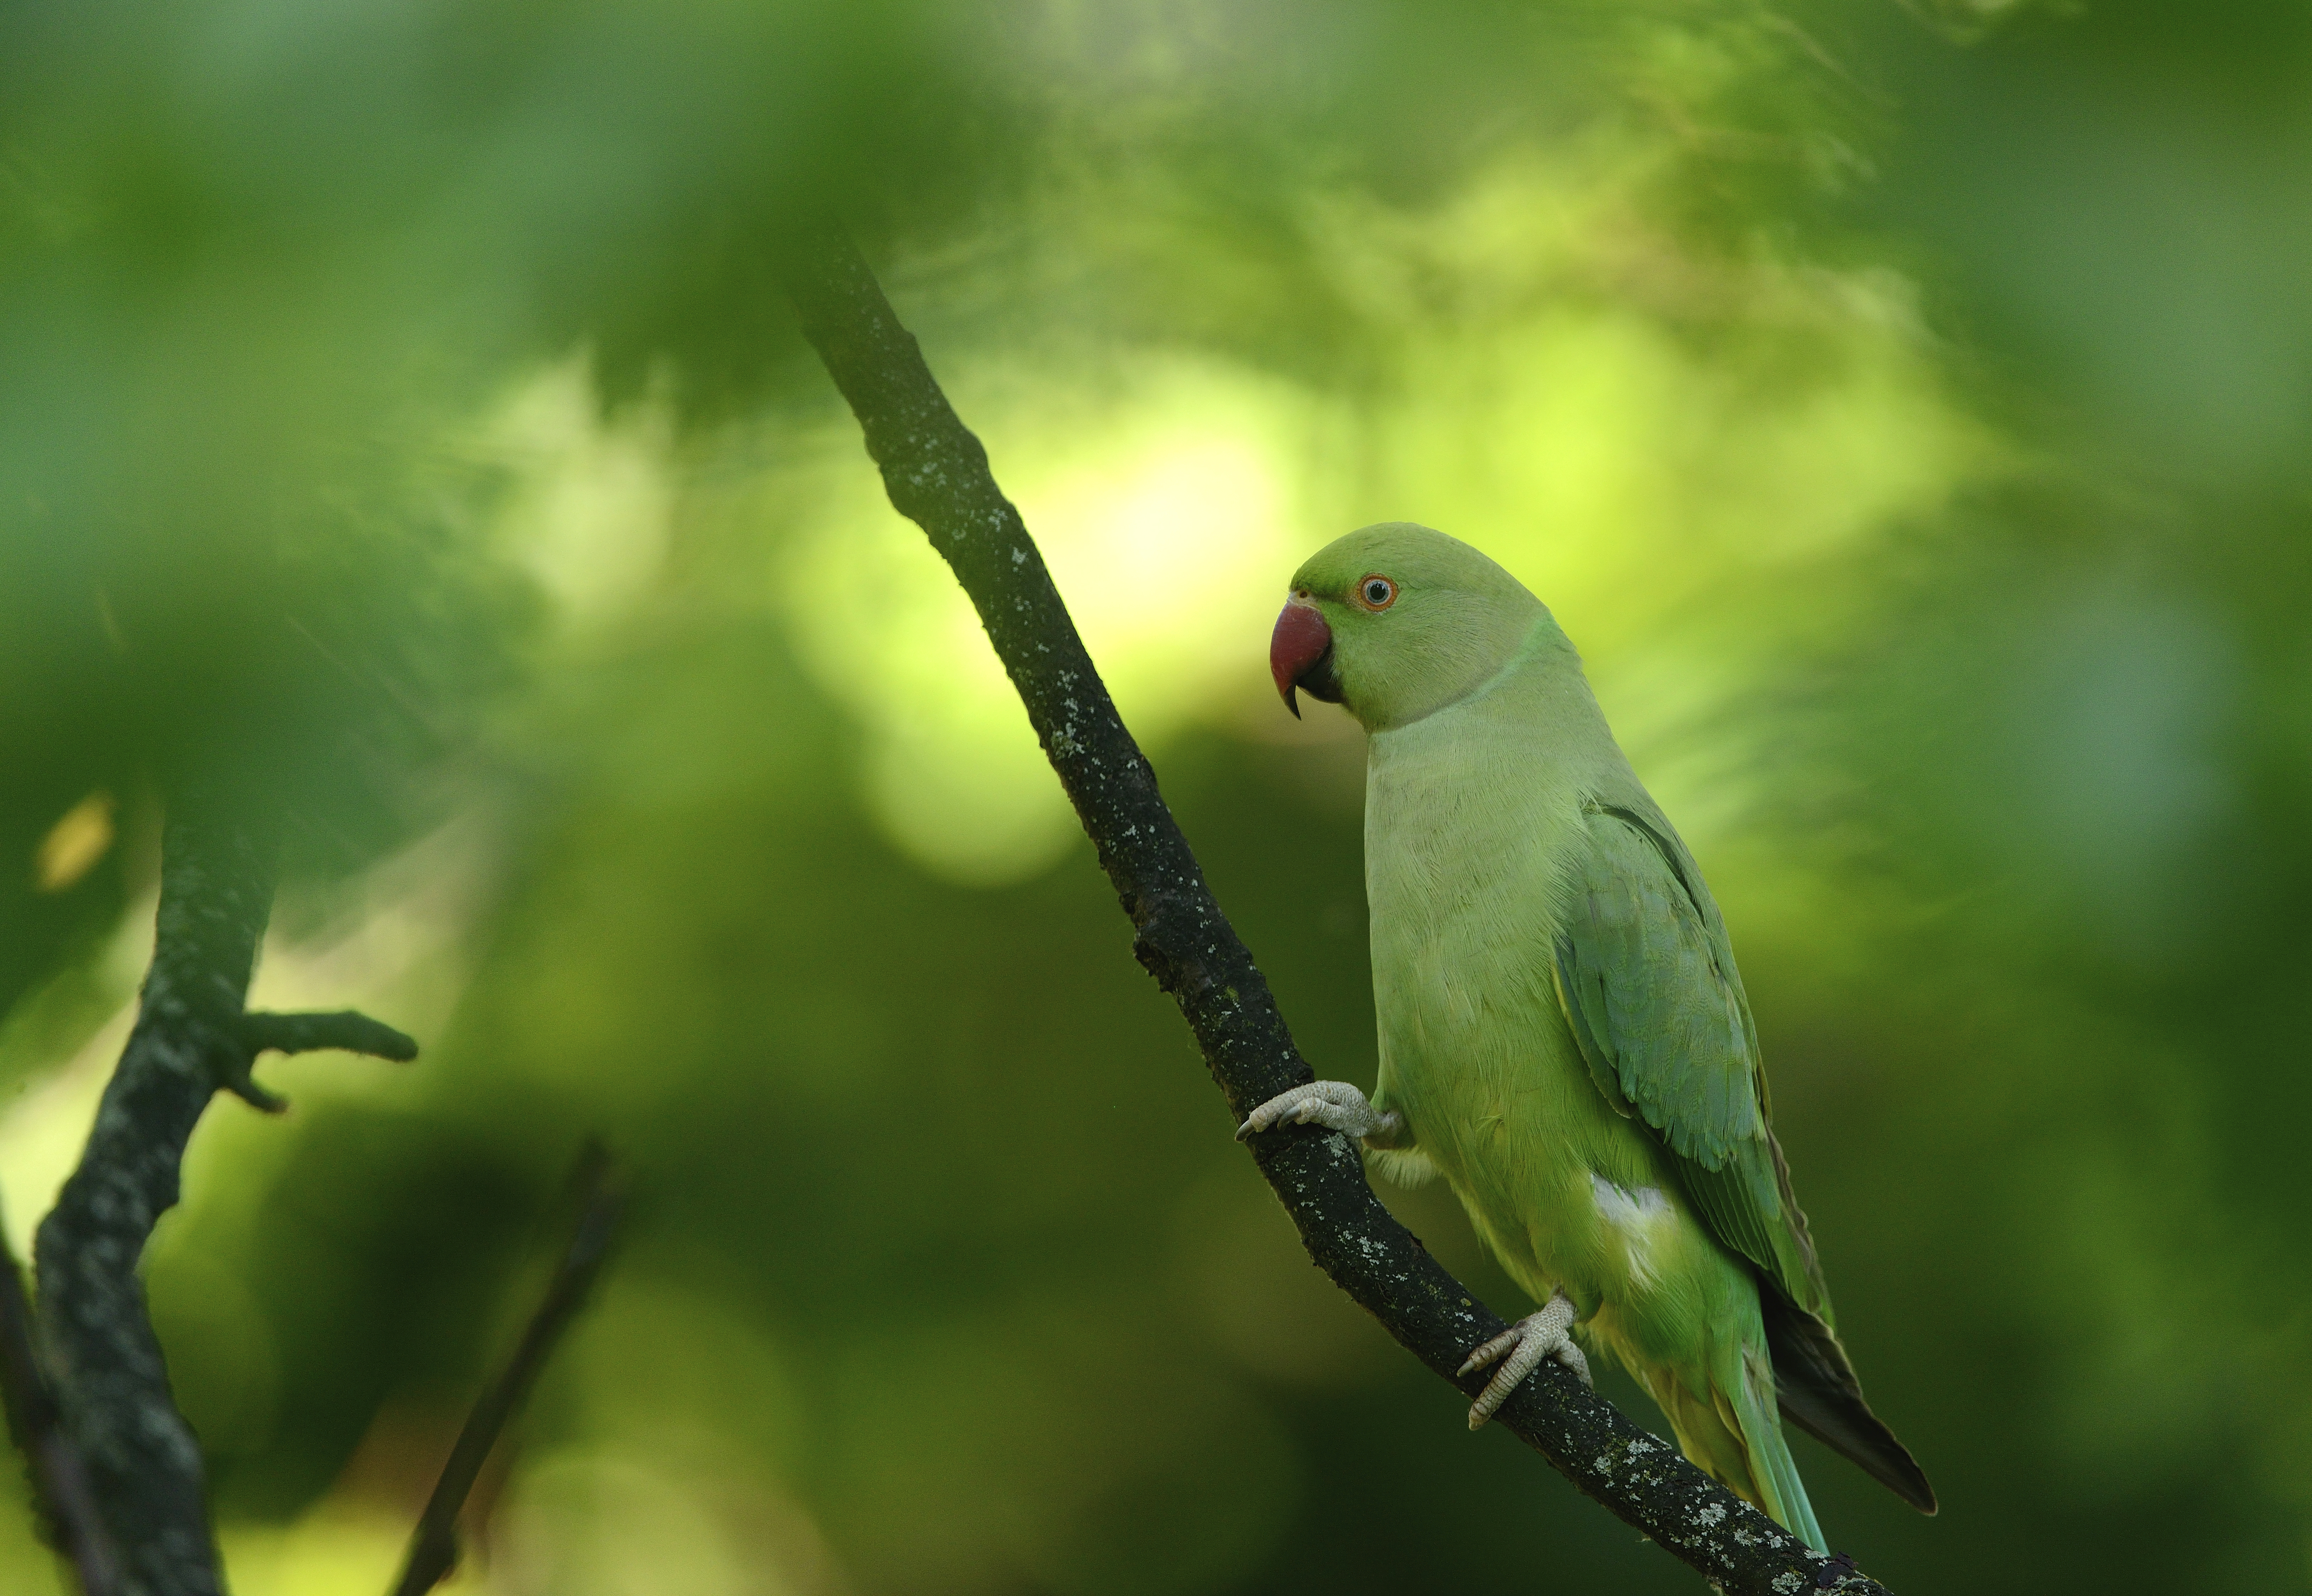 Ring Necked Parakeets in the UK - The RSPB